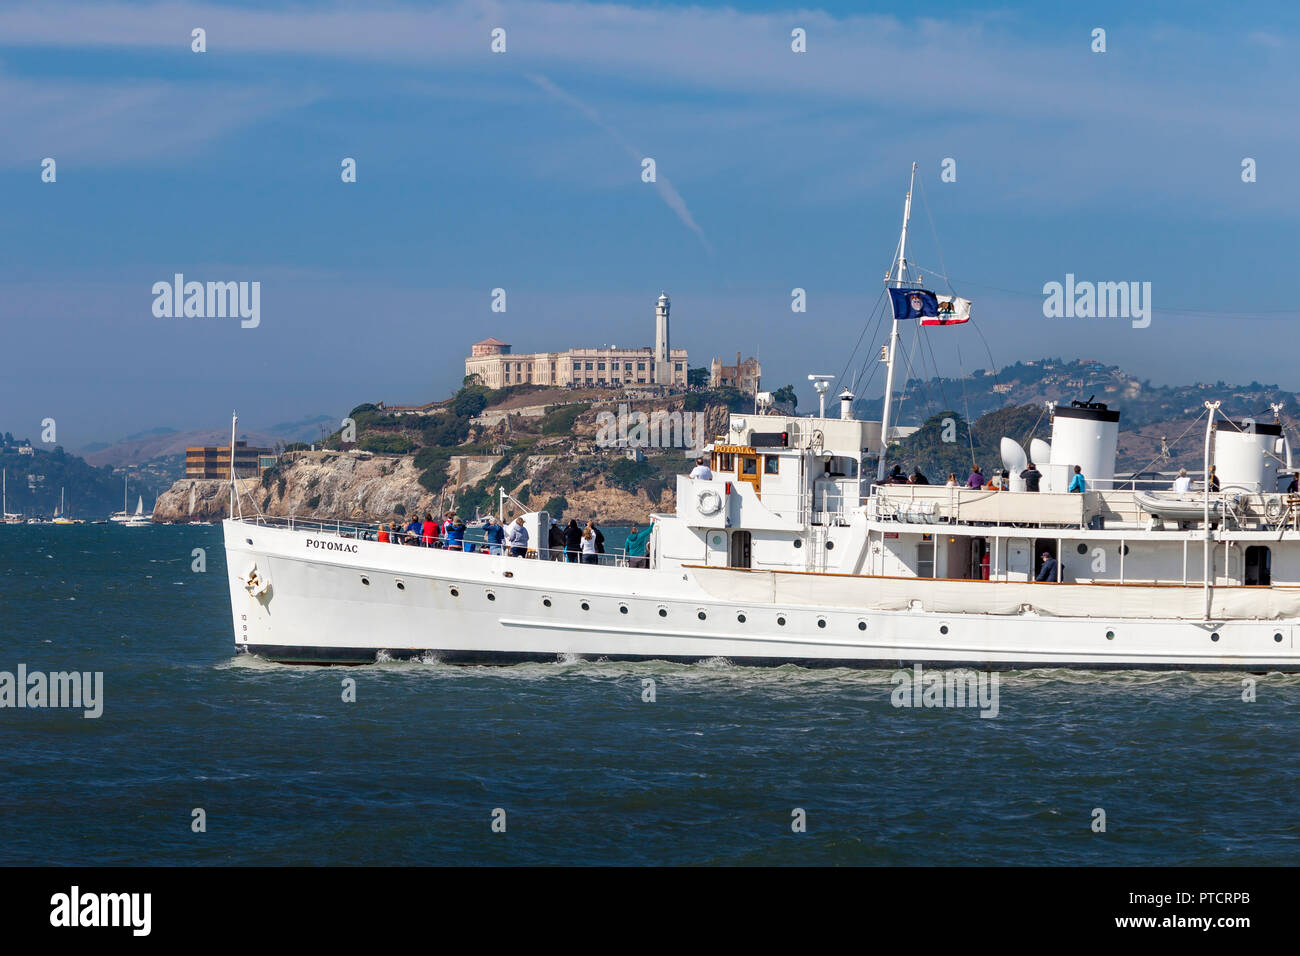 USS Potomac (AG-25) - Franklin Delano Roosevelt's yacht, launched 1934, sails past Alcatraz Prison in San Francisco Bay, California, USA - Stock Image